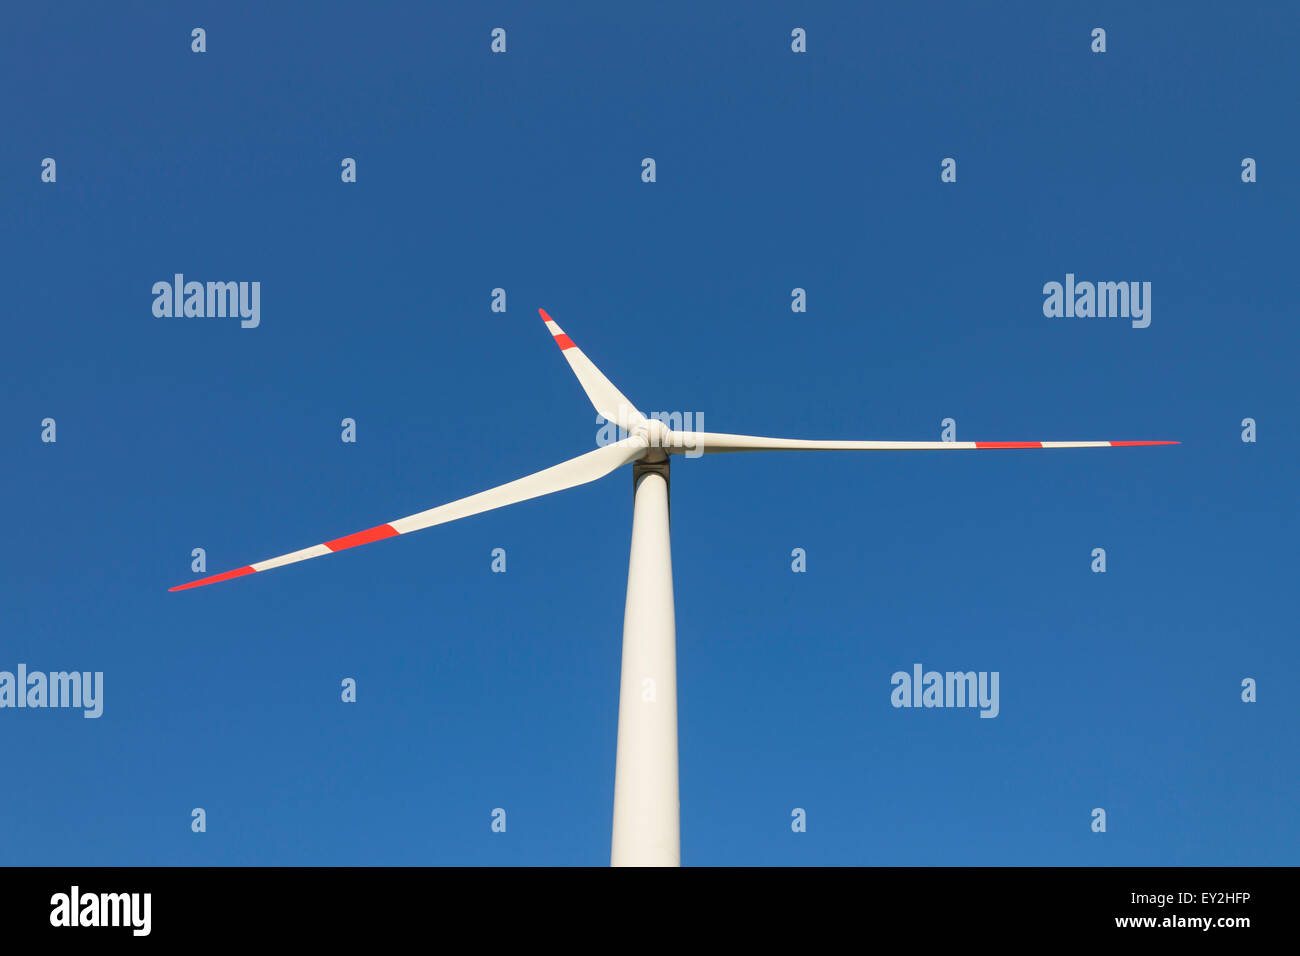 Worm's-eye view on rotor blades of wind turbine against blue sky - Stock Image